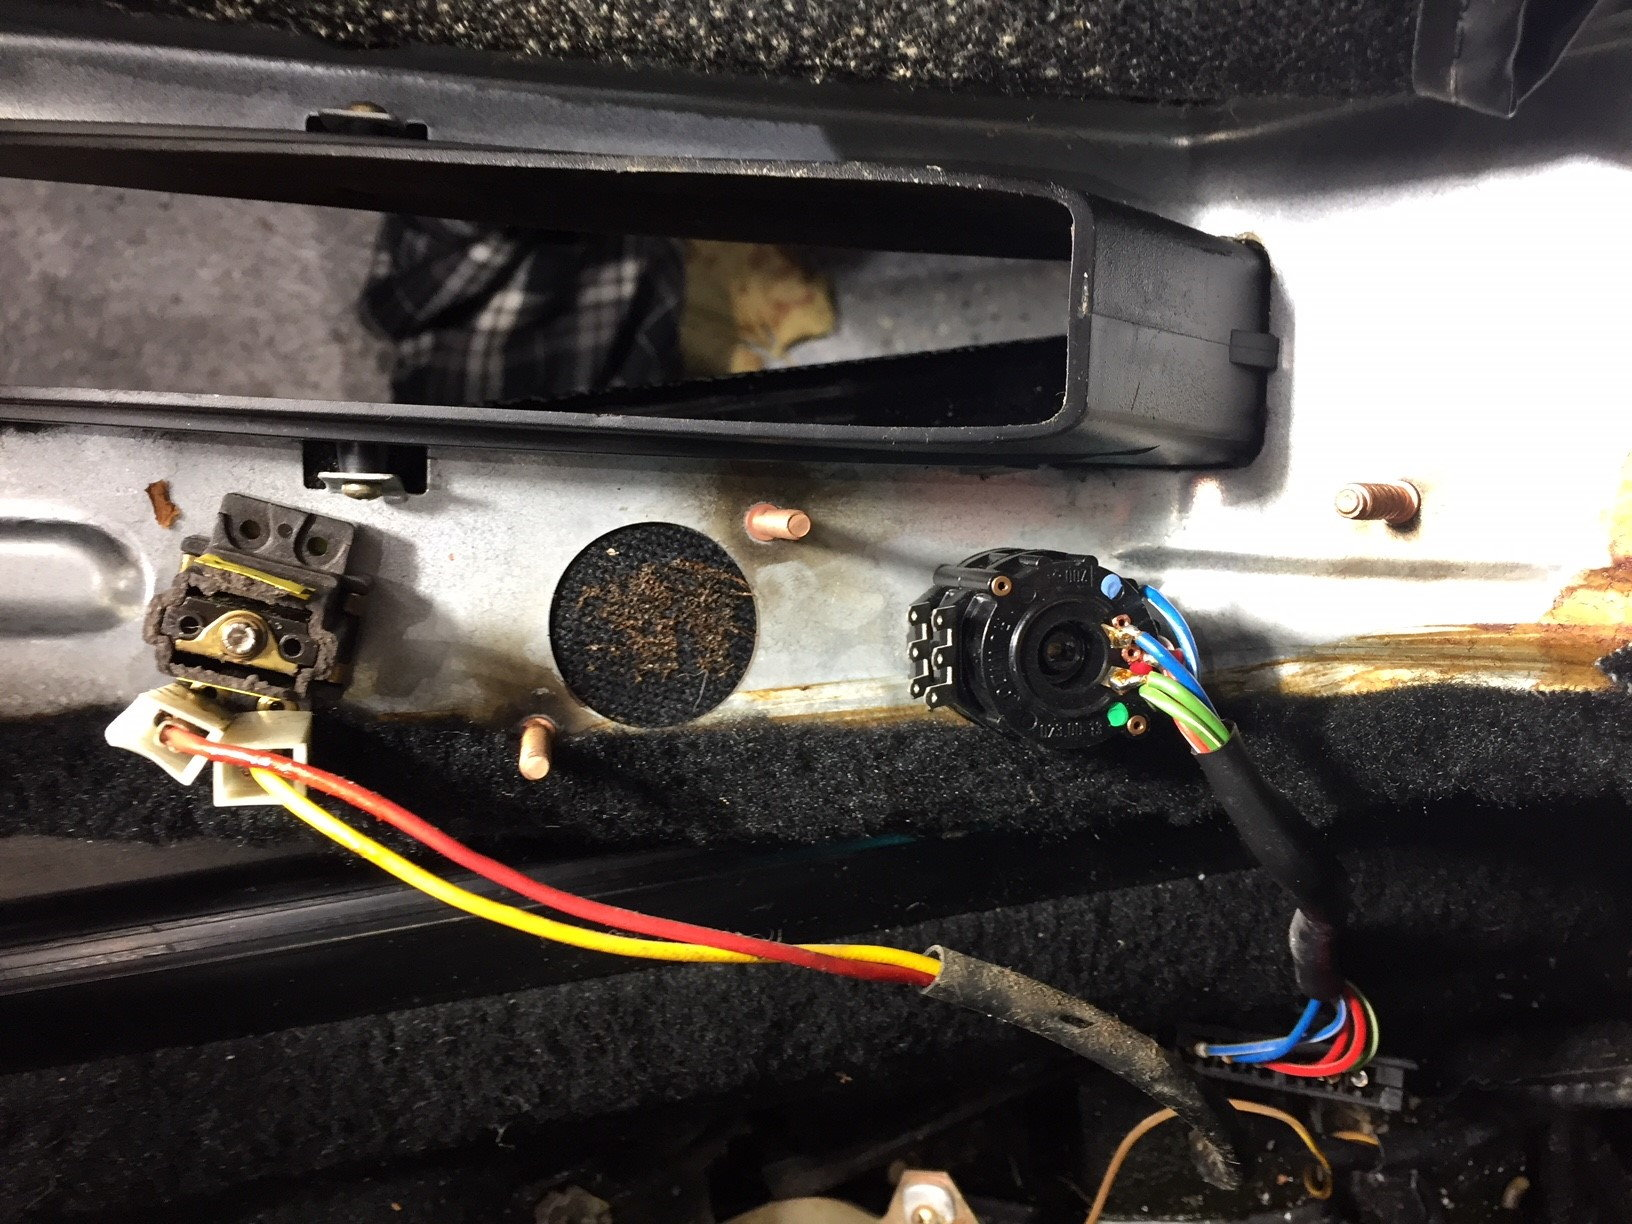 19865 928s Radio Wiring Experts Help Please Rennlist Porsche Advanced Race Car Thanks In Advance For Any